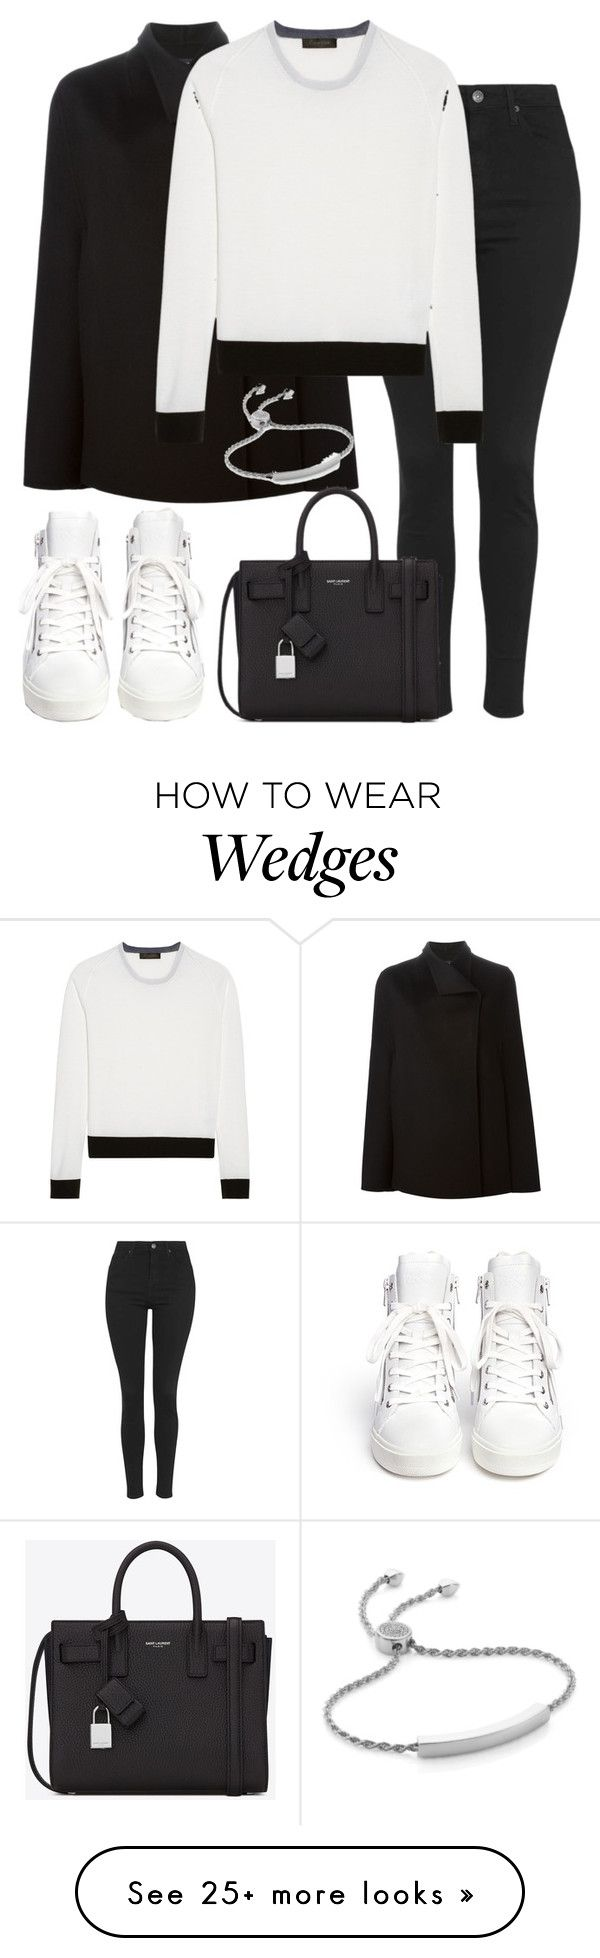 """""""Untitled #2316"""" by elenaday on Polyvore featuring Joseph, Topshop, Calvin Klein Collection, Yves Saint Laurent, Ash and Monica Vinader"""